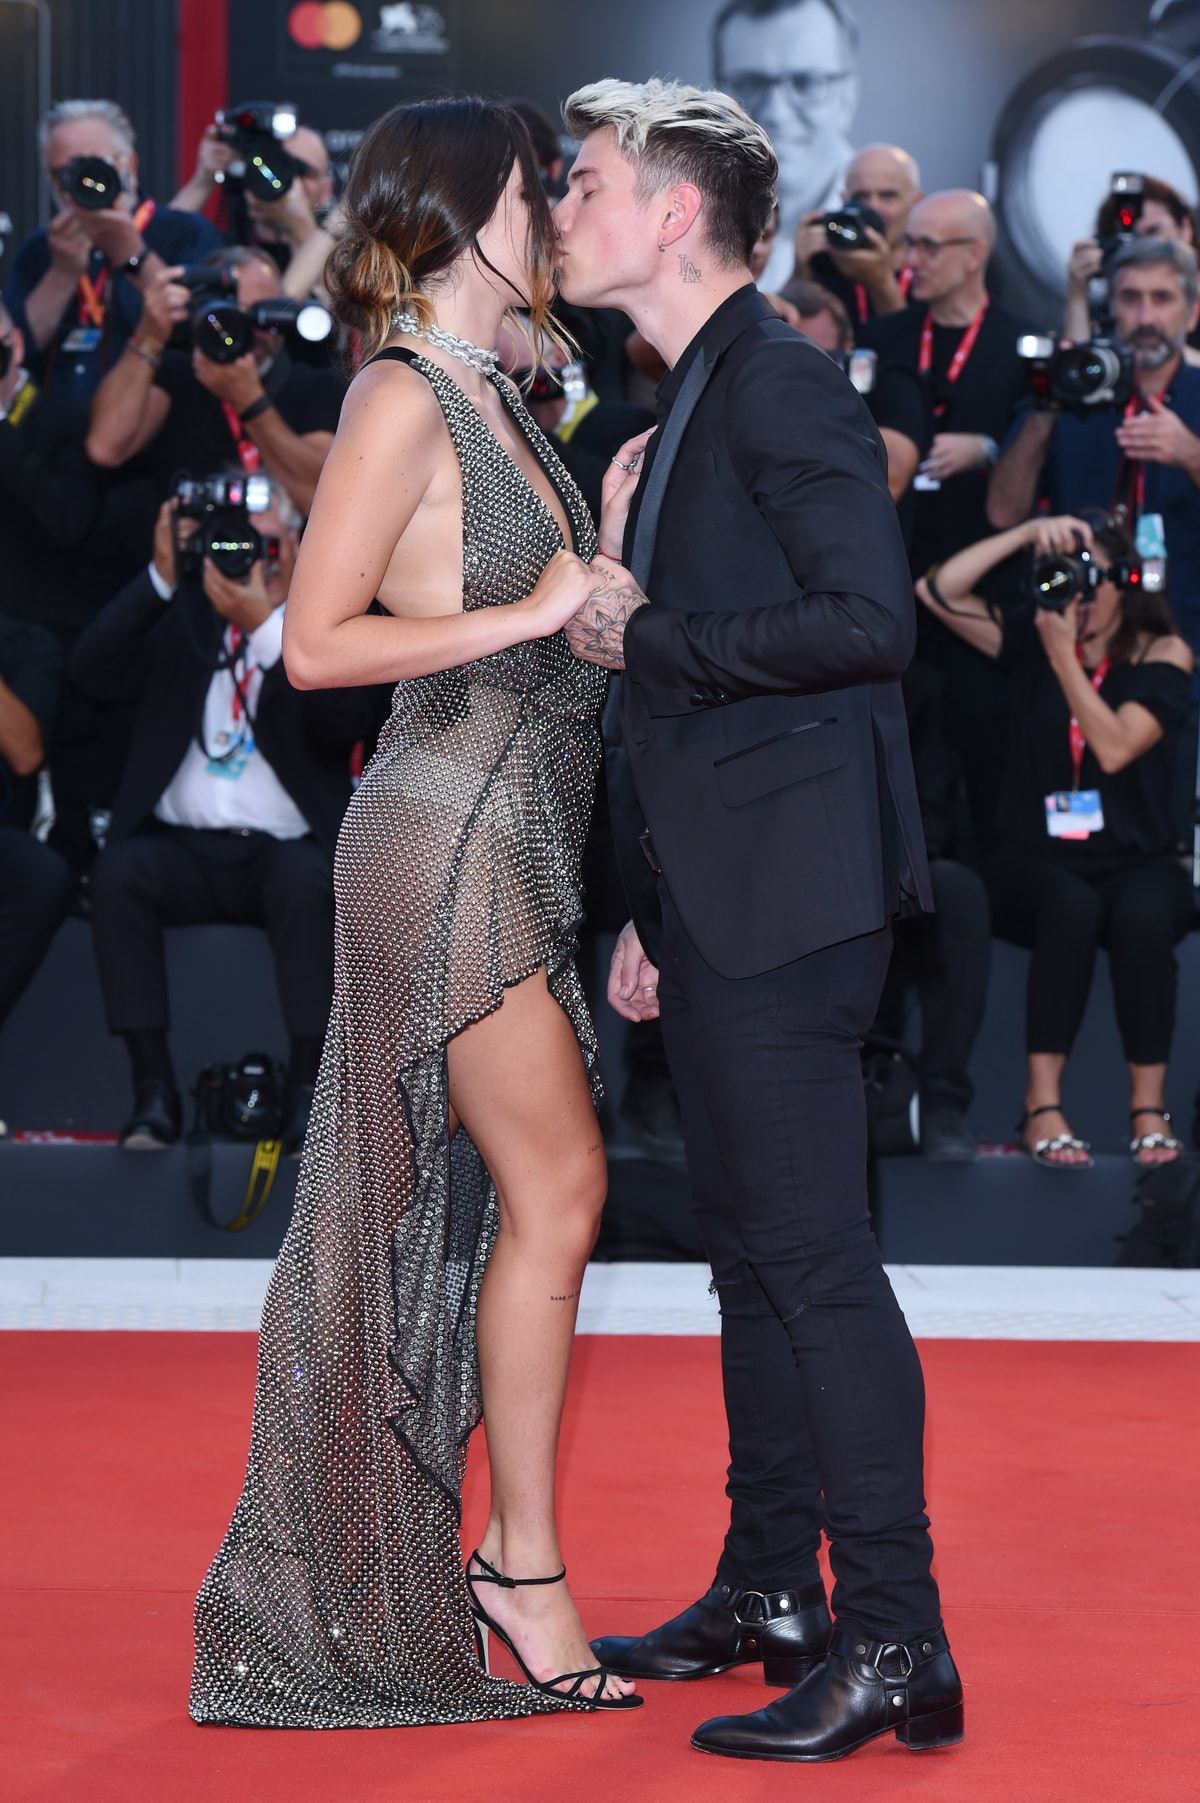 """VENICE, ITALY - AUGUST 31: Bella Thorne and Benjamin Mascolo walk the red carpet ahead of the """"Joker..."""